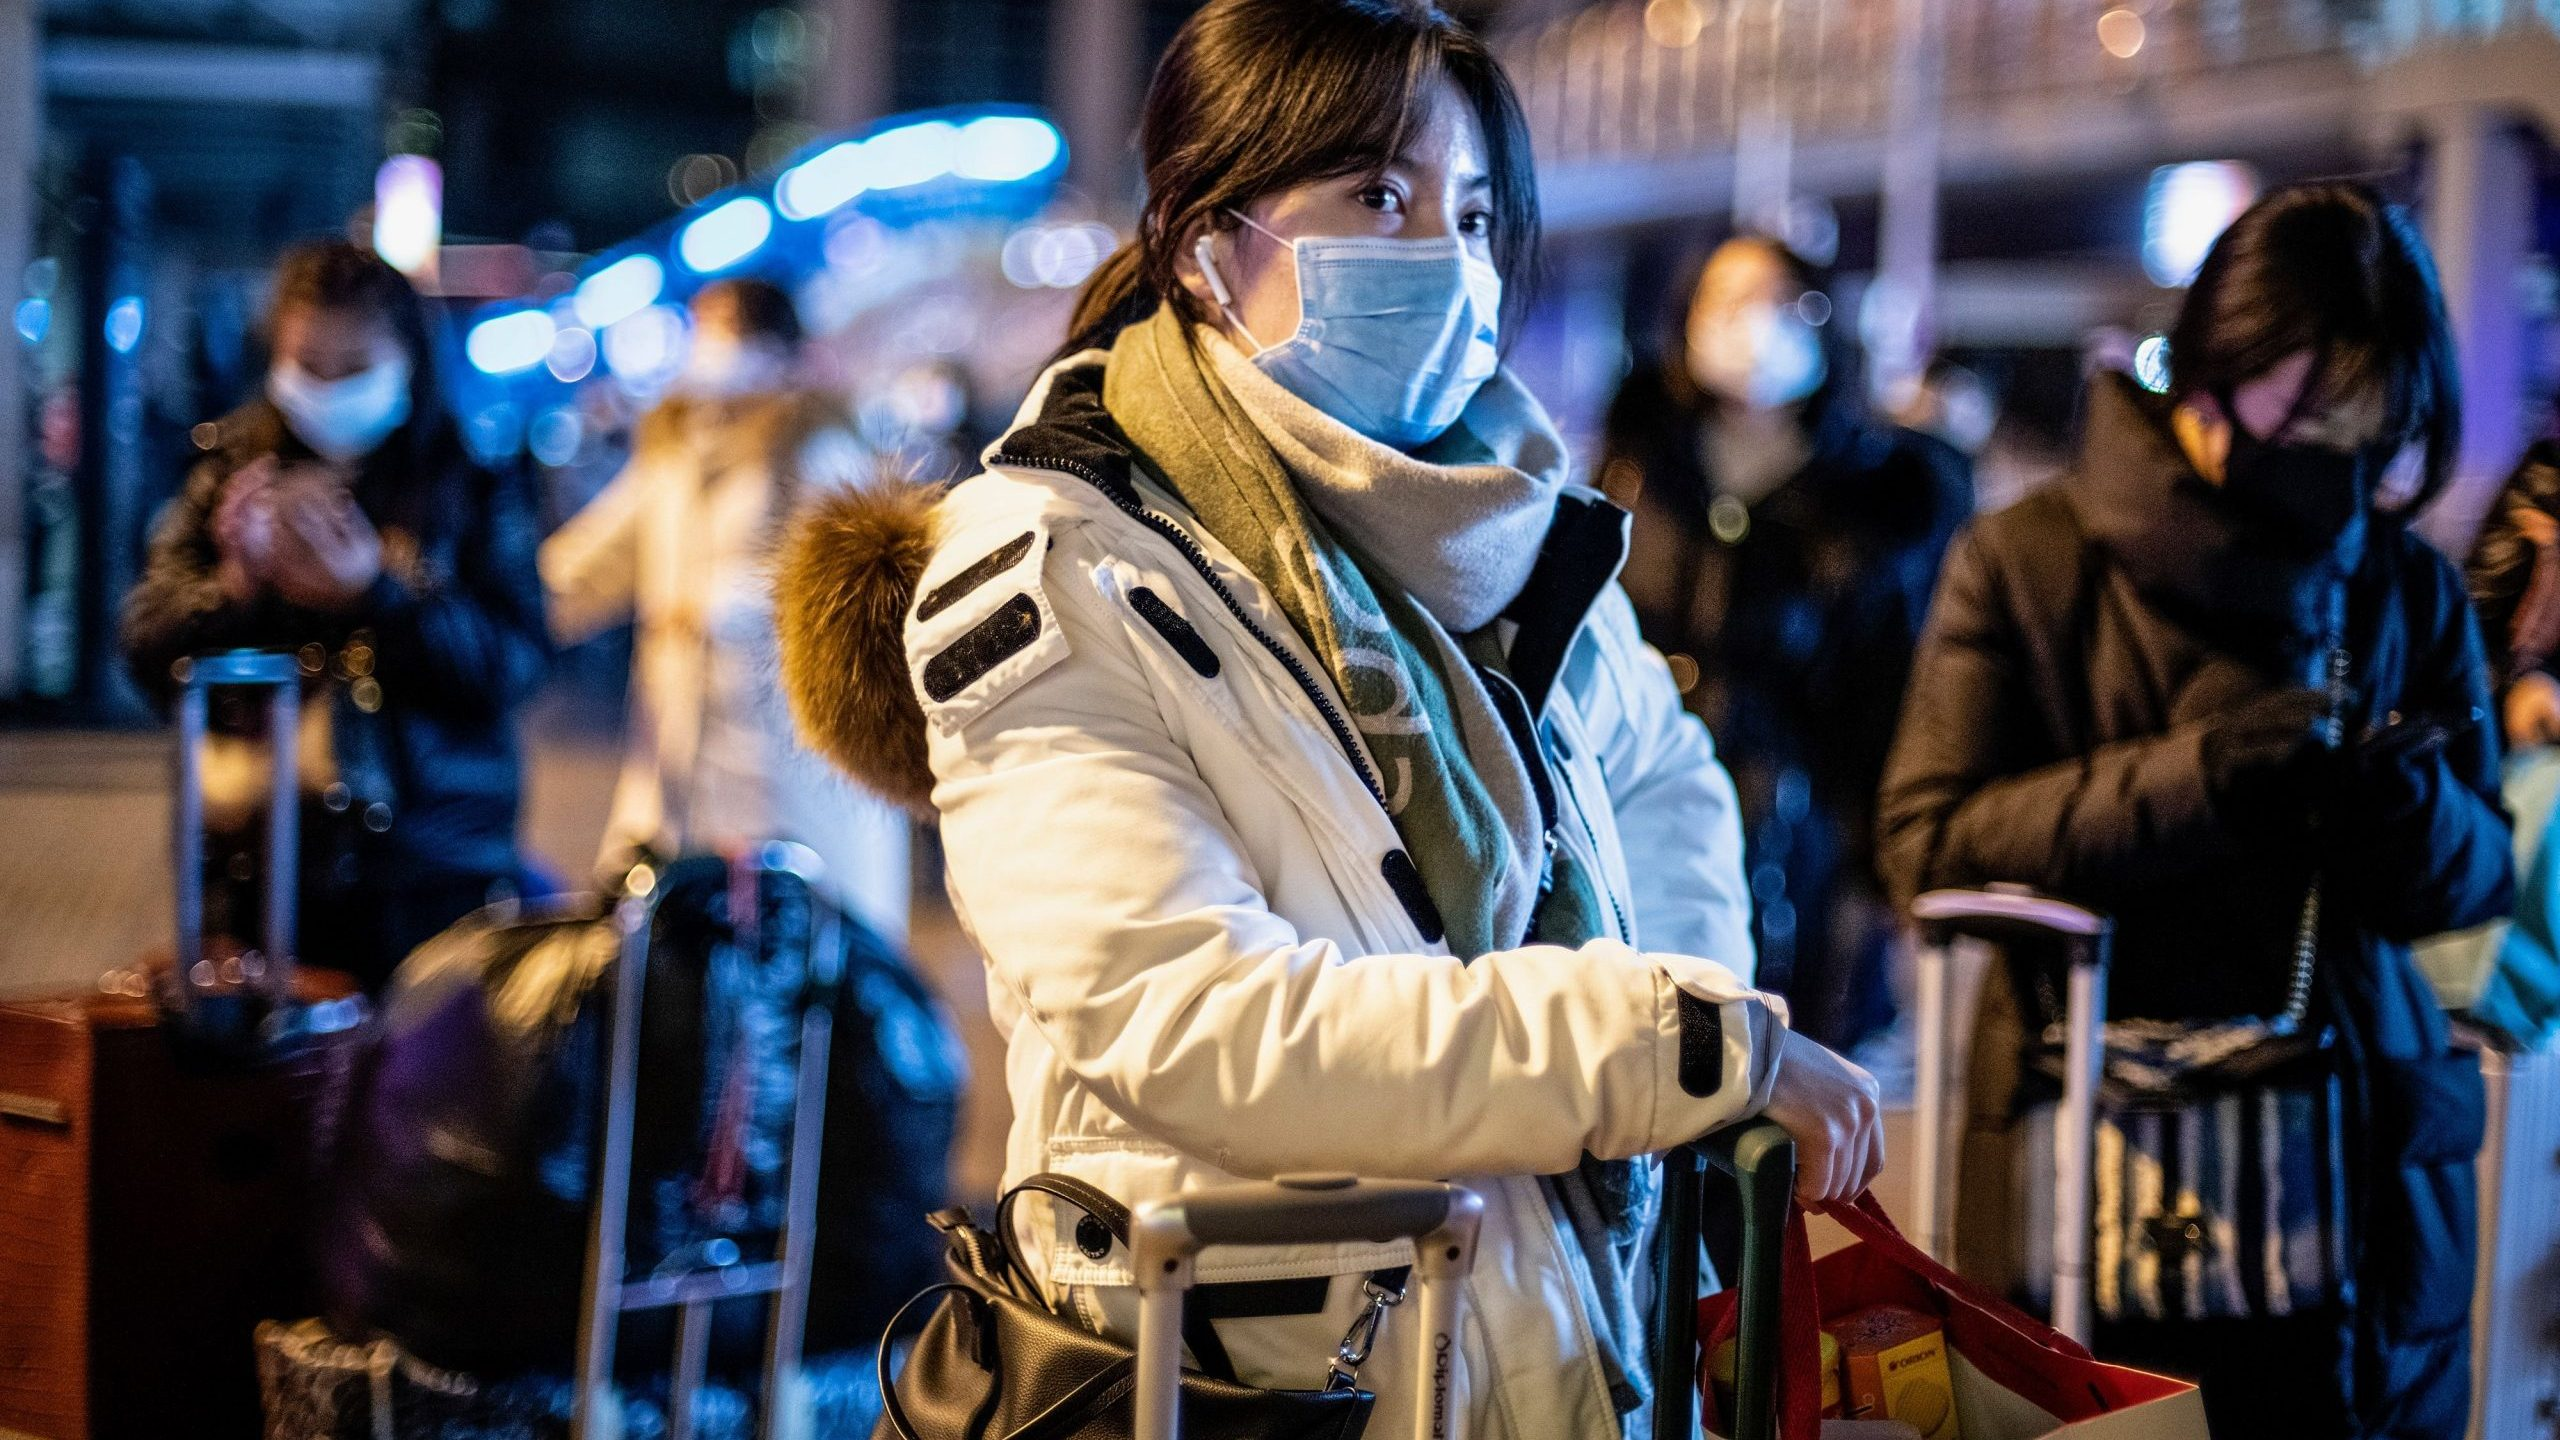 A woman wearing a protective mask looks on as she arrives at Beijing railway station ahead of the Lunar New Year in Beijing on Jan. 23, 2020. (Cerdit: NOEL CELIS/AFP via Getty Images)